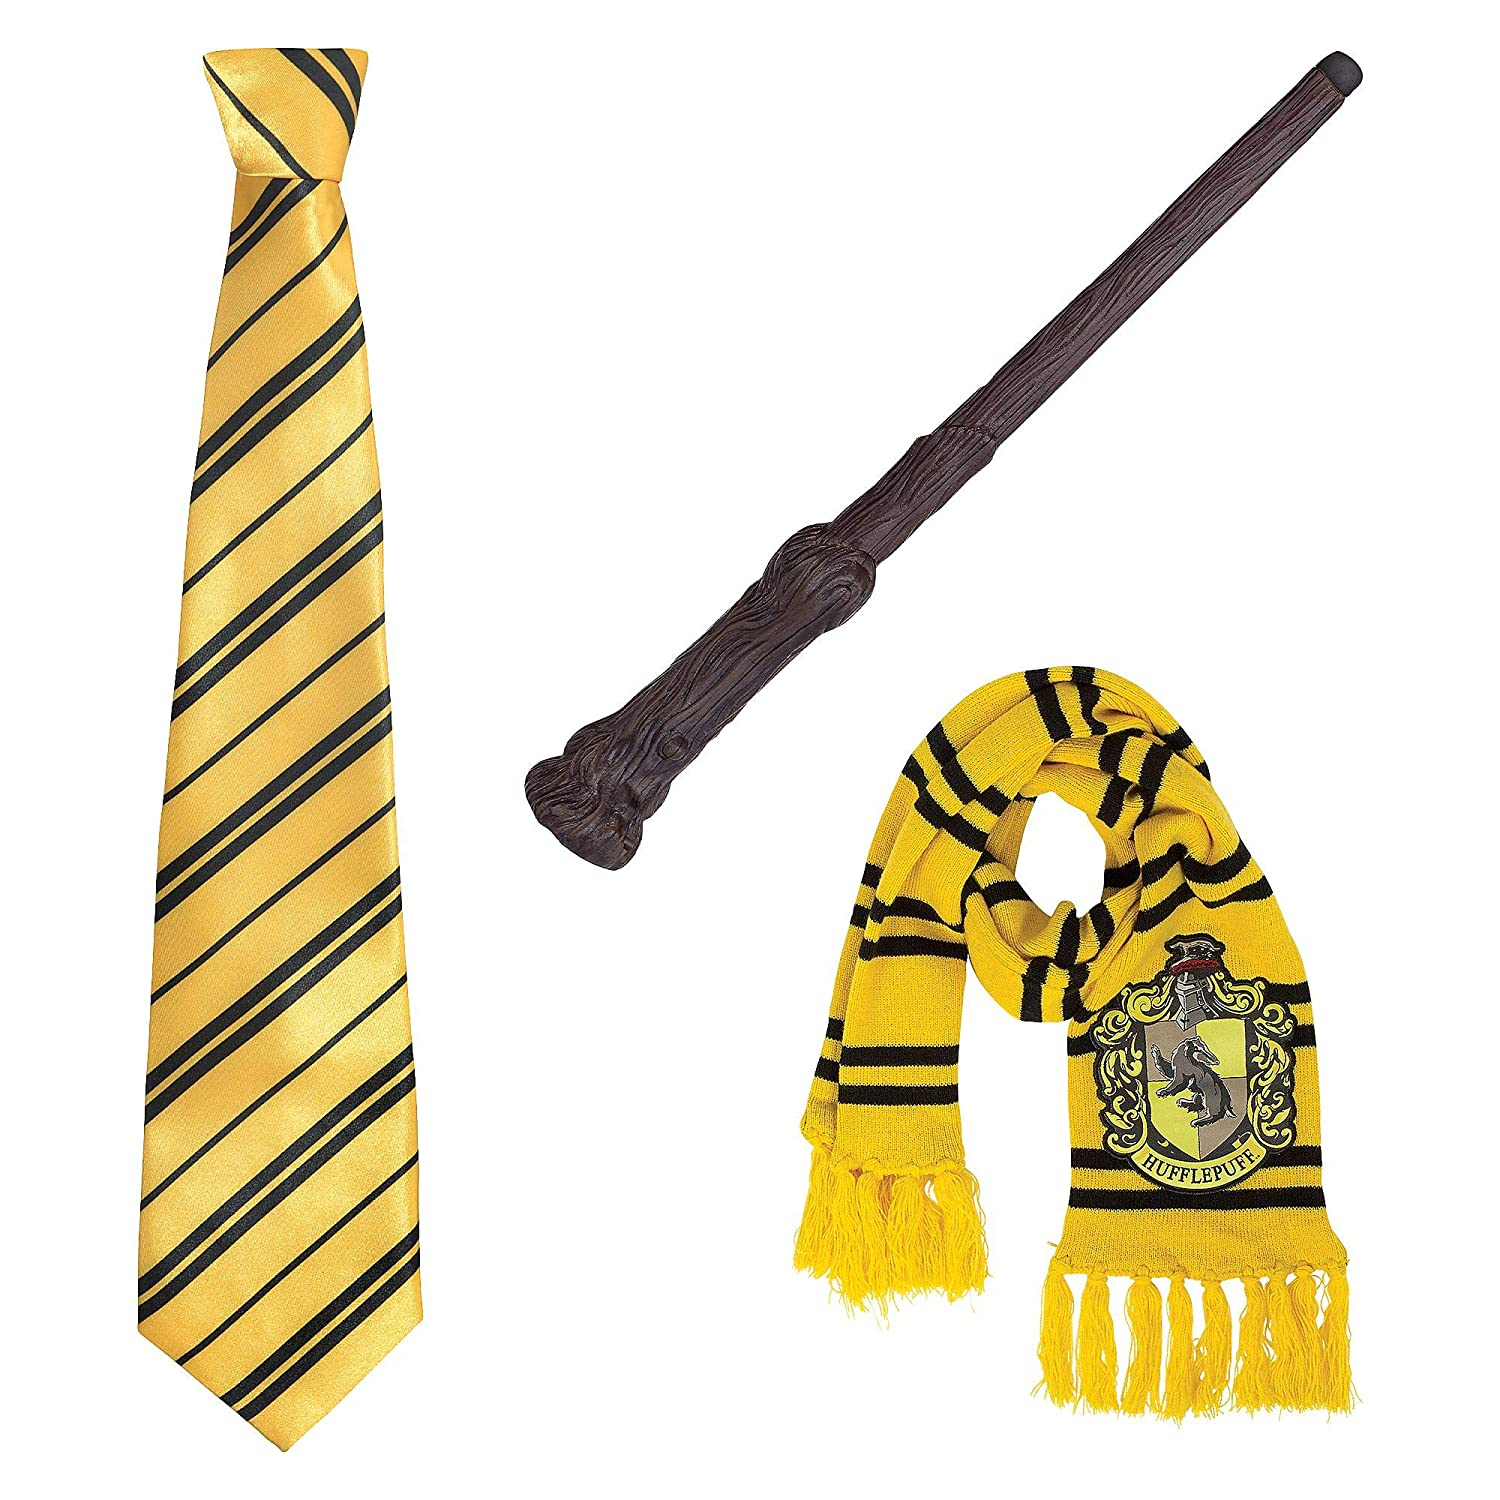 LICENSED HARRY POTTER WAND WITH LIGHT /& SOUND HALLOWEEN COSTUME ACCESSORY